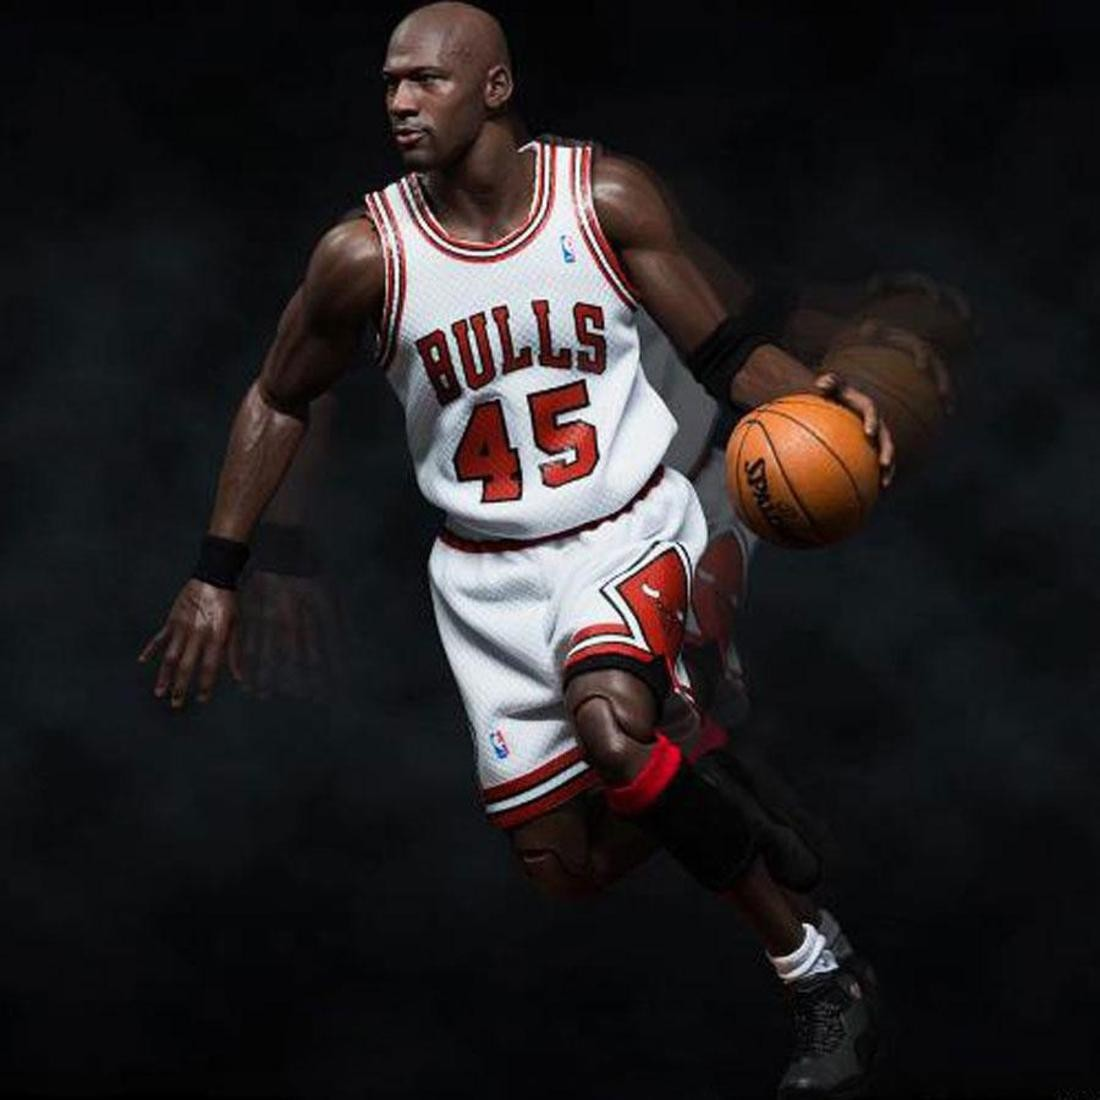 timeless design 1b17e 4fccf NBA x Enterbay Michael Jordan 1/6 Scale 12 Inch Figure - #45 Home Version  (white)